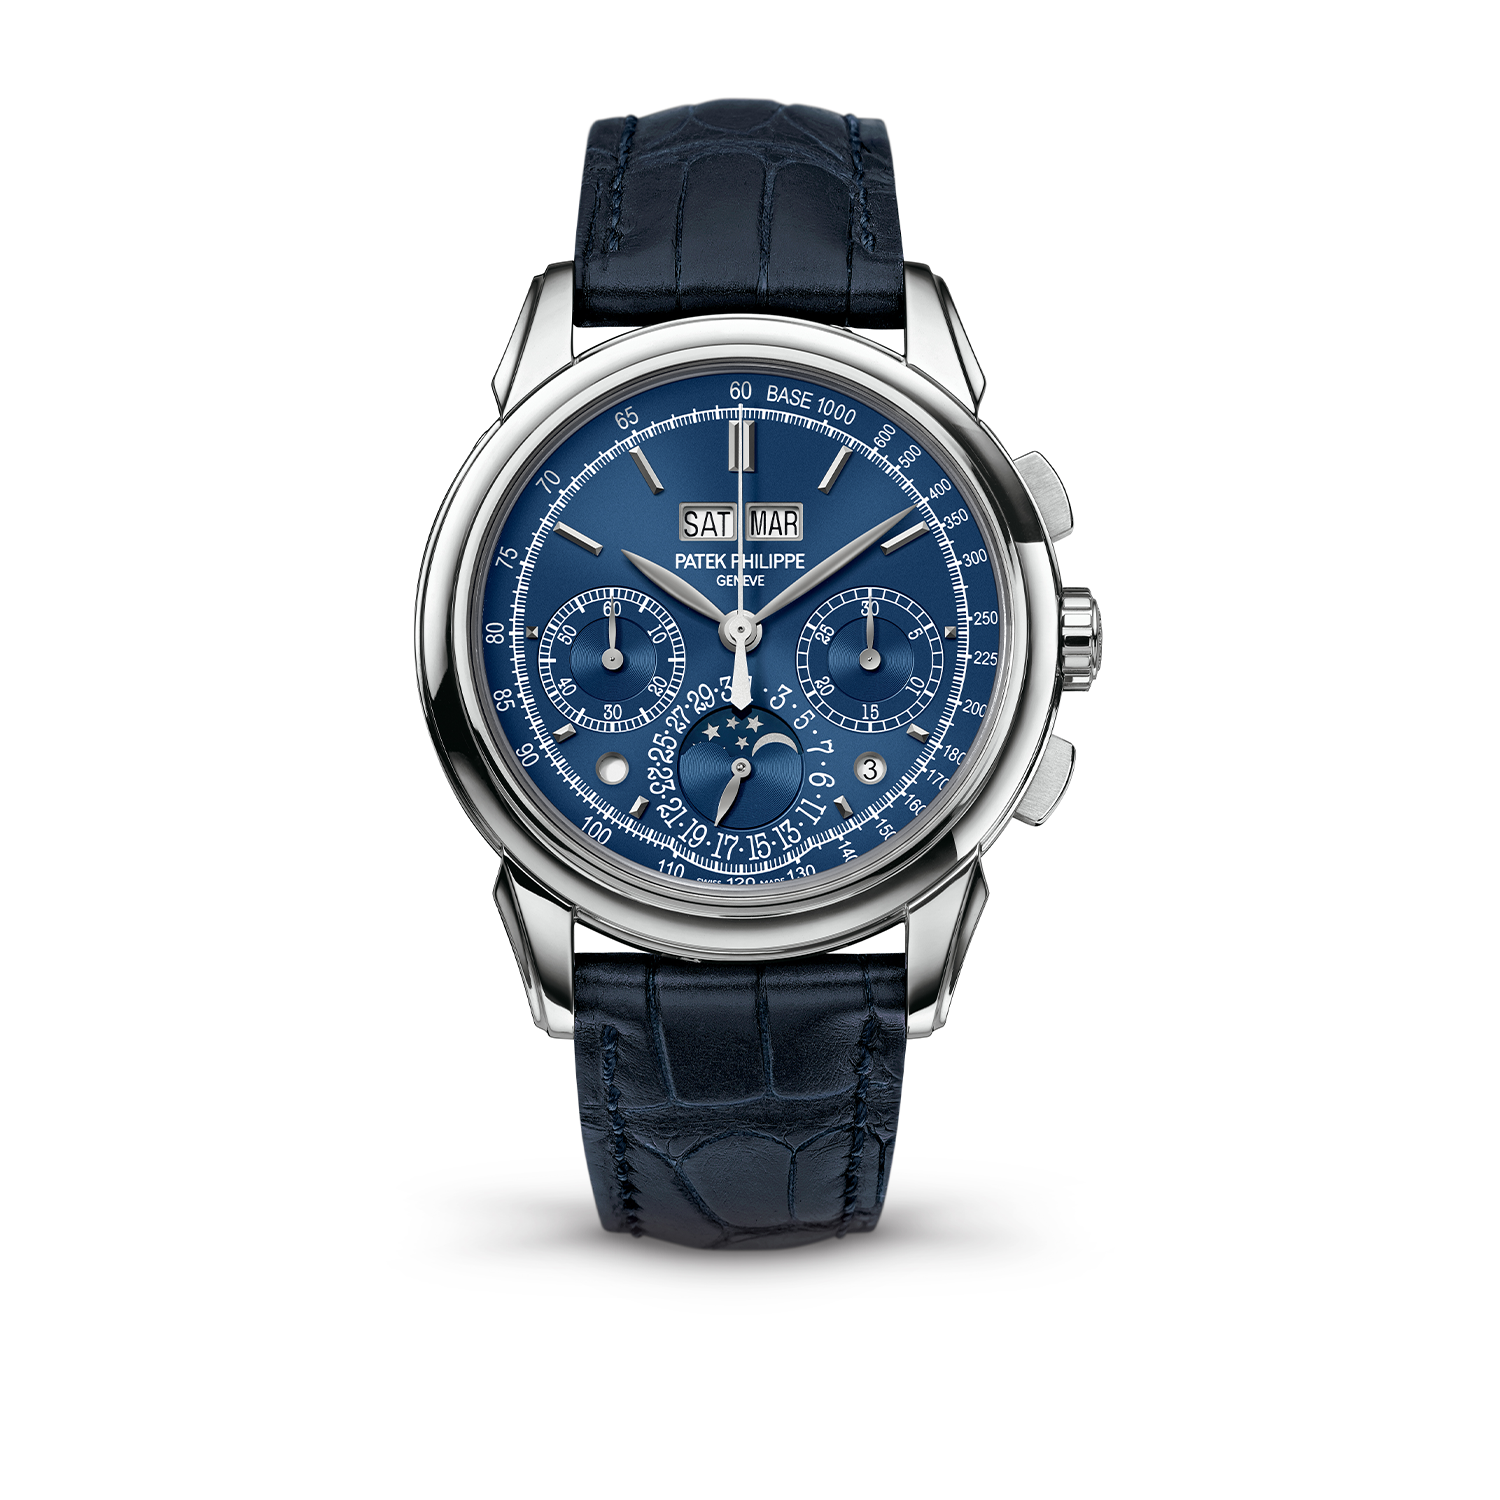 "2013 version of the Patek Philippe ref. 5270 in white gold with the blue dial, still with the infamous ""chin"" on the watch dial"